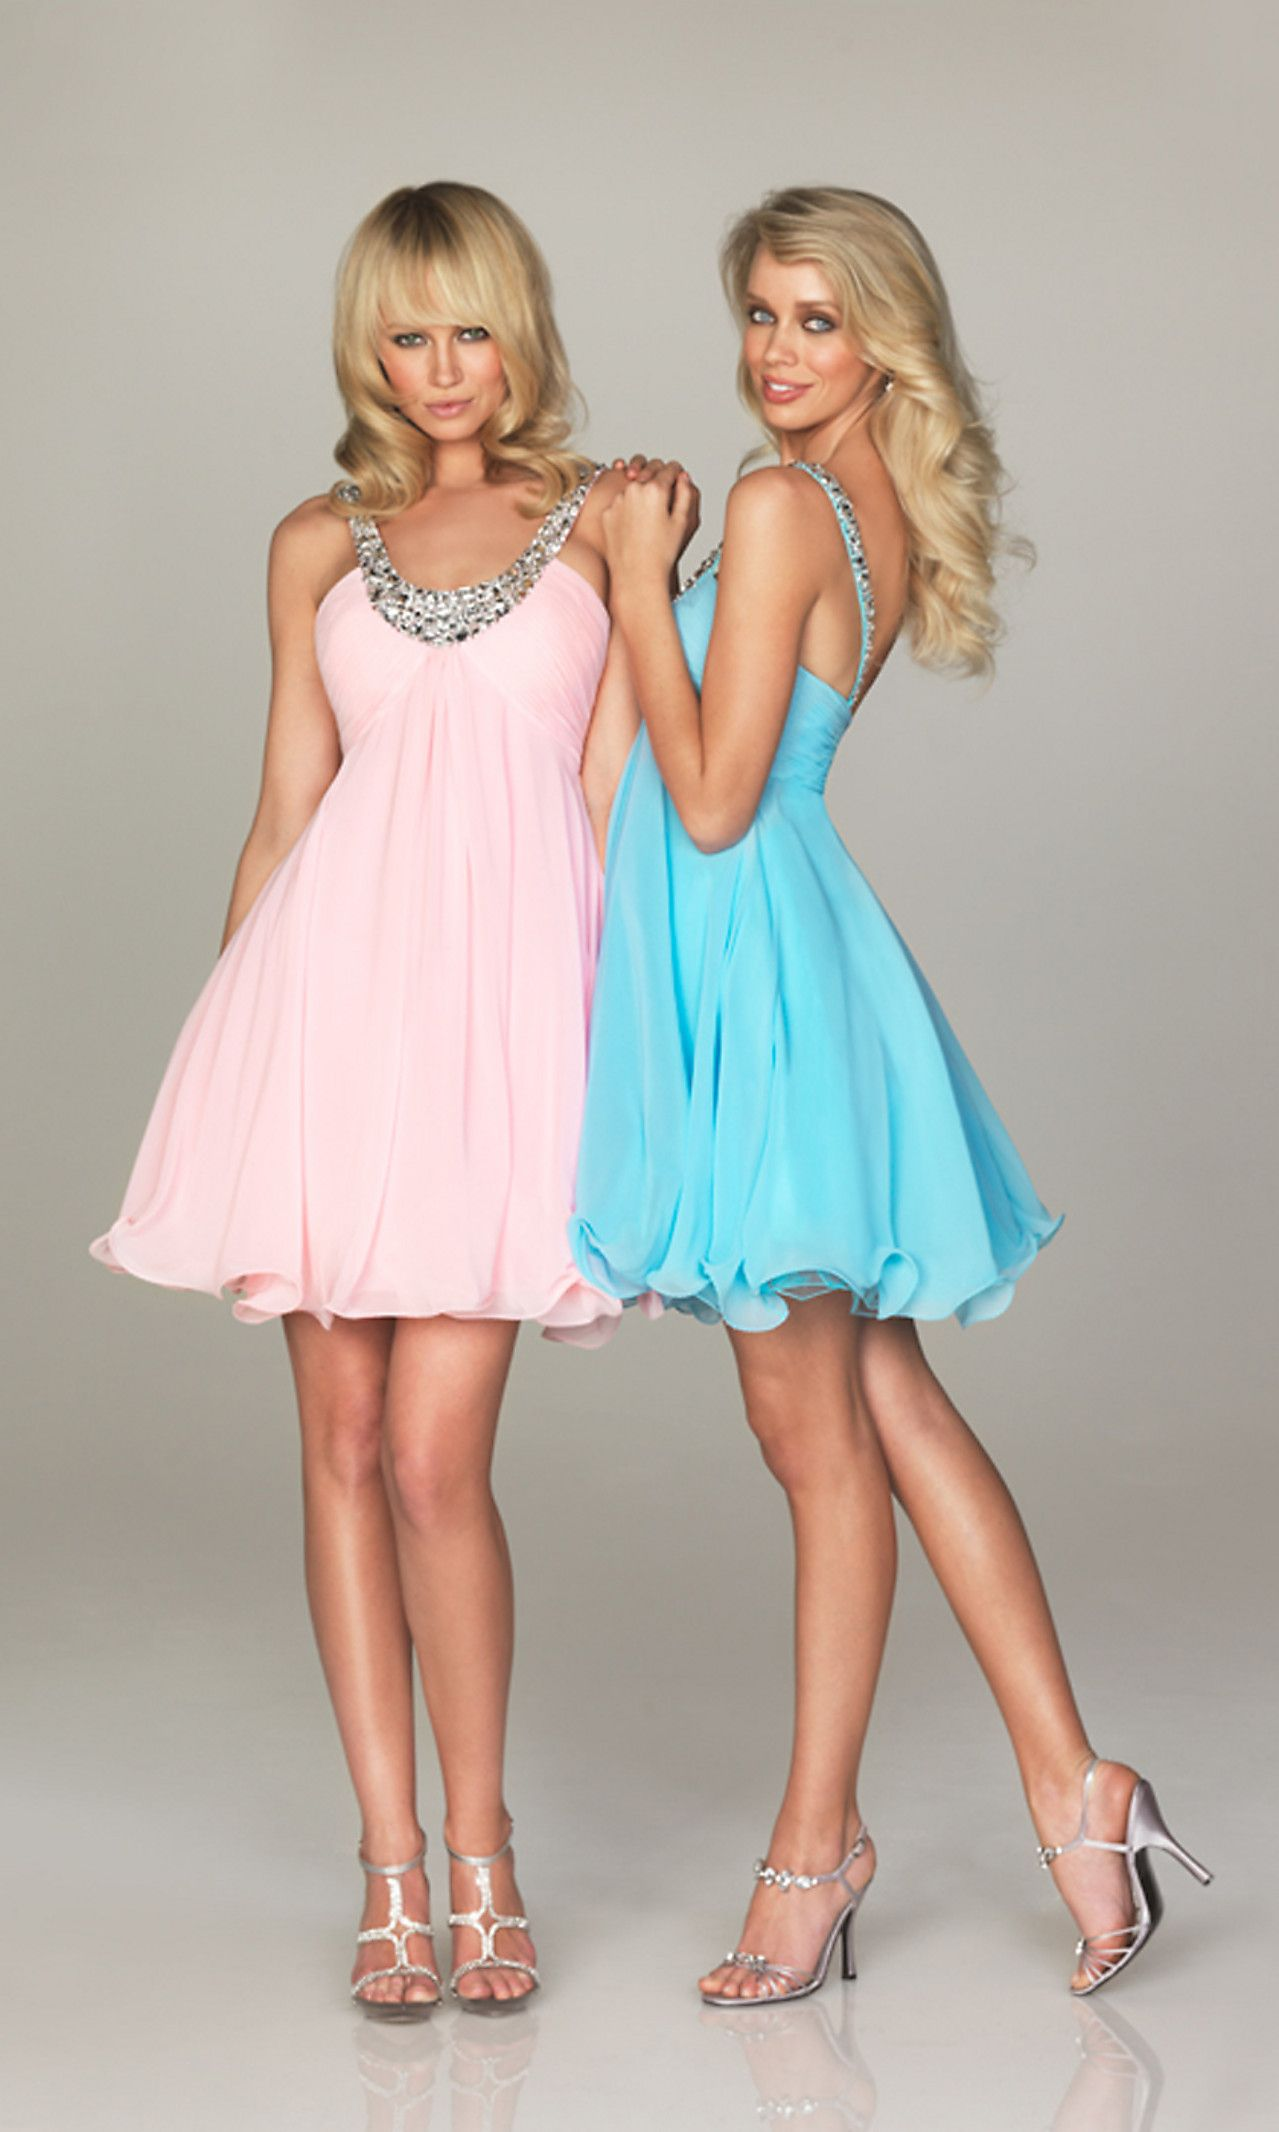 pink & blue | Fashion & Style | Pinterest | Pink blue, Special ...